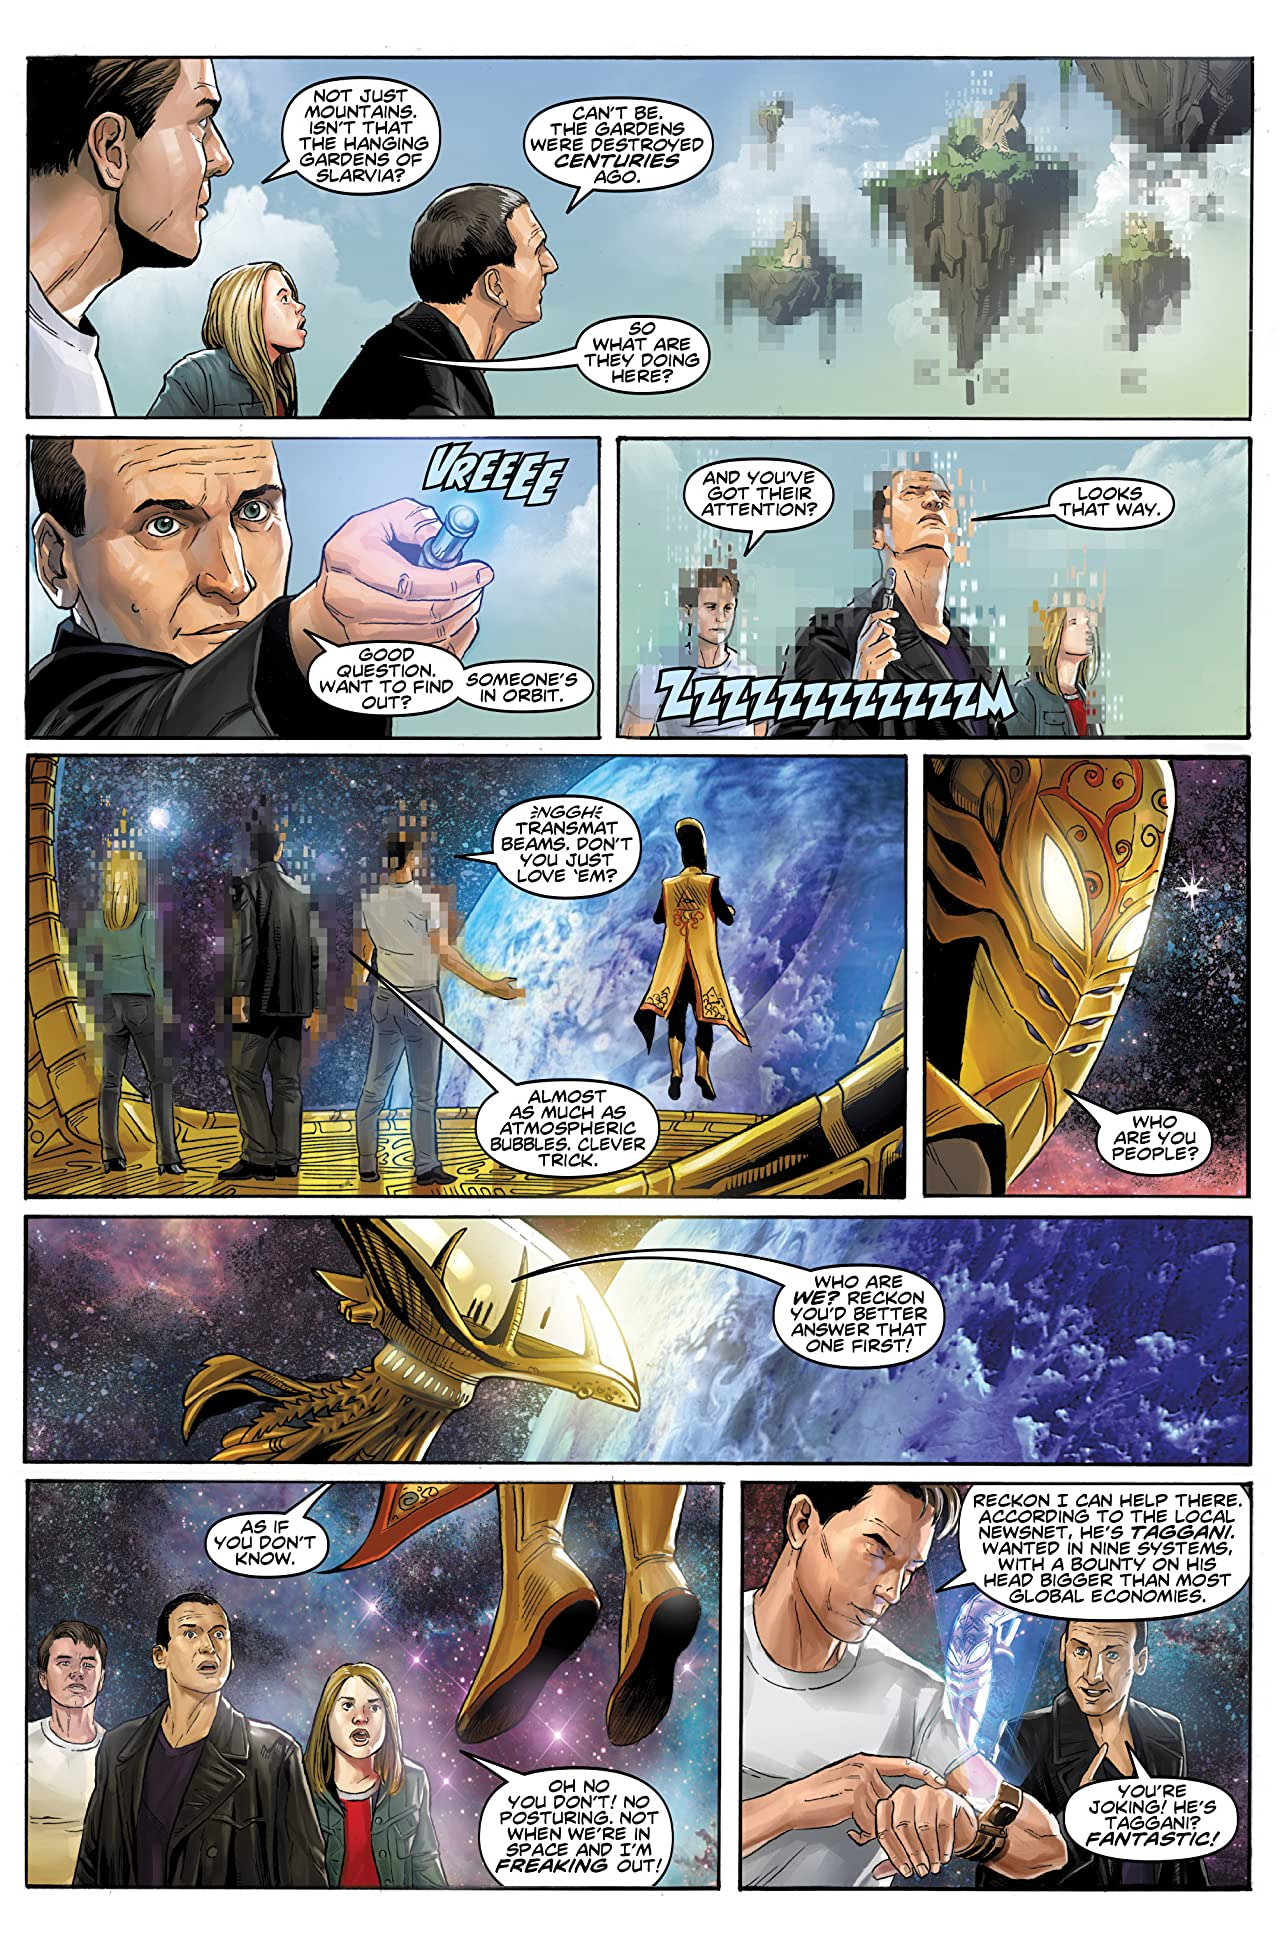 Doctor Who: The Ninth Doctor Vol. 2